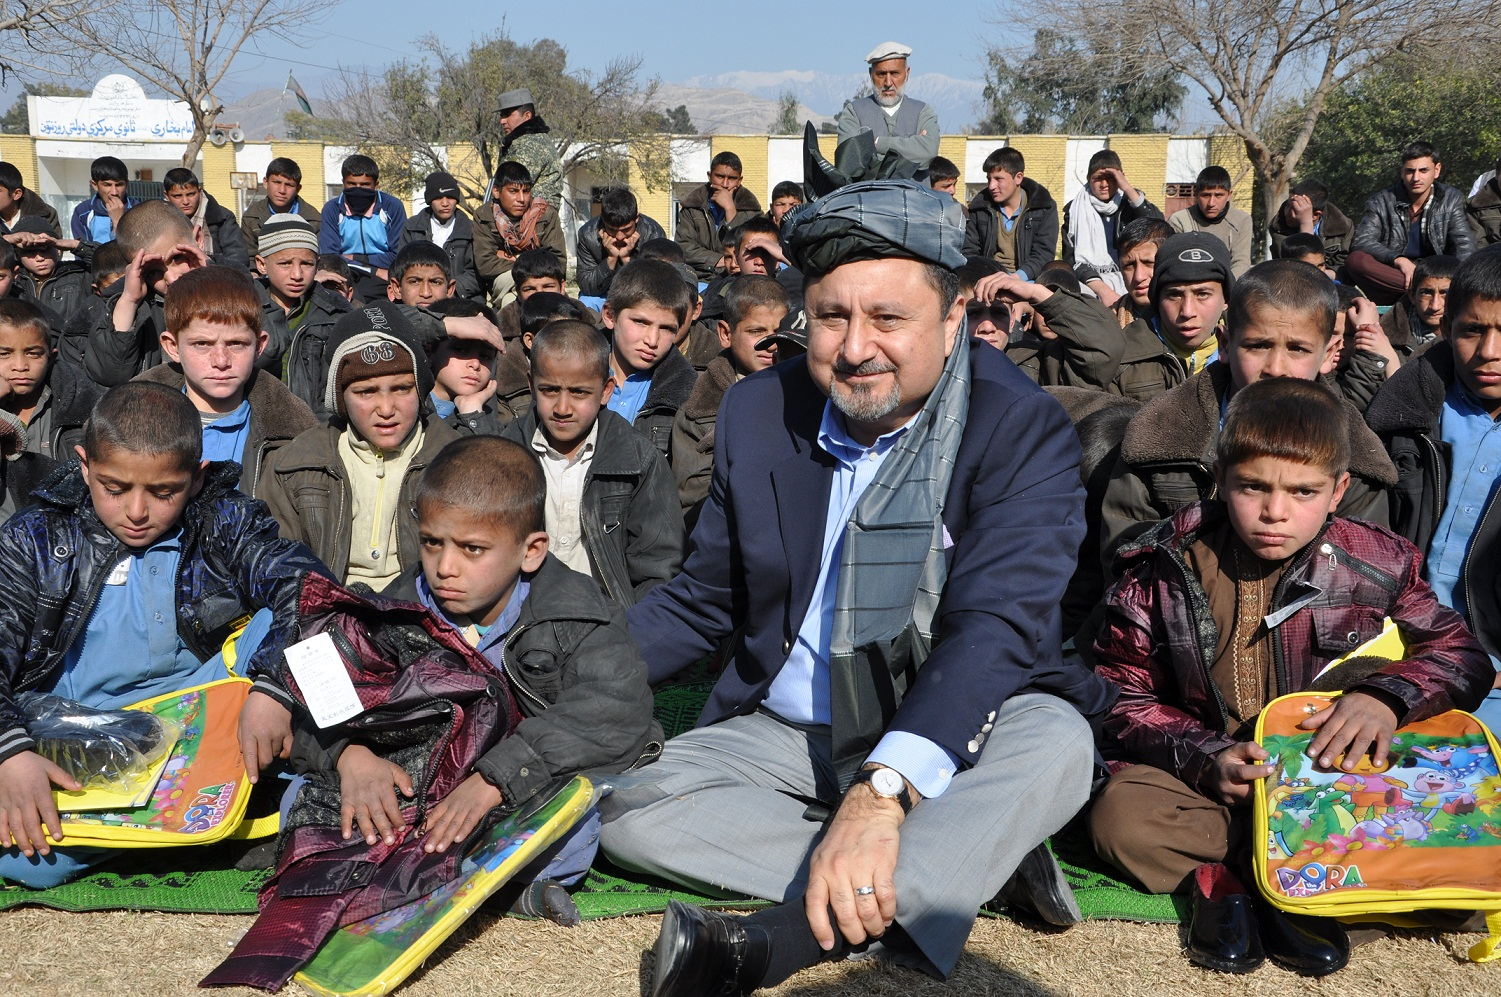 support for orphanages bayat foundation at the tahya e maskan orphanage in kabul founders ehsan and fatema bayat donated a new